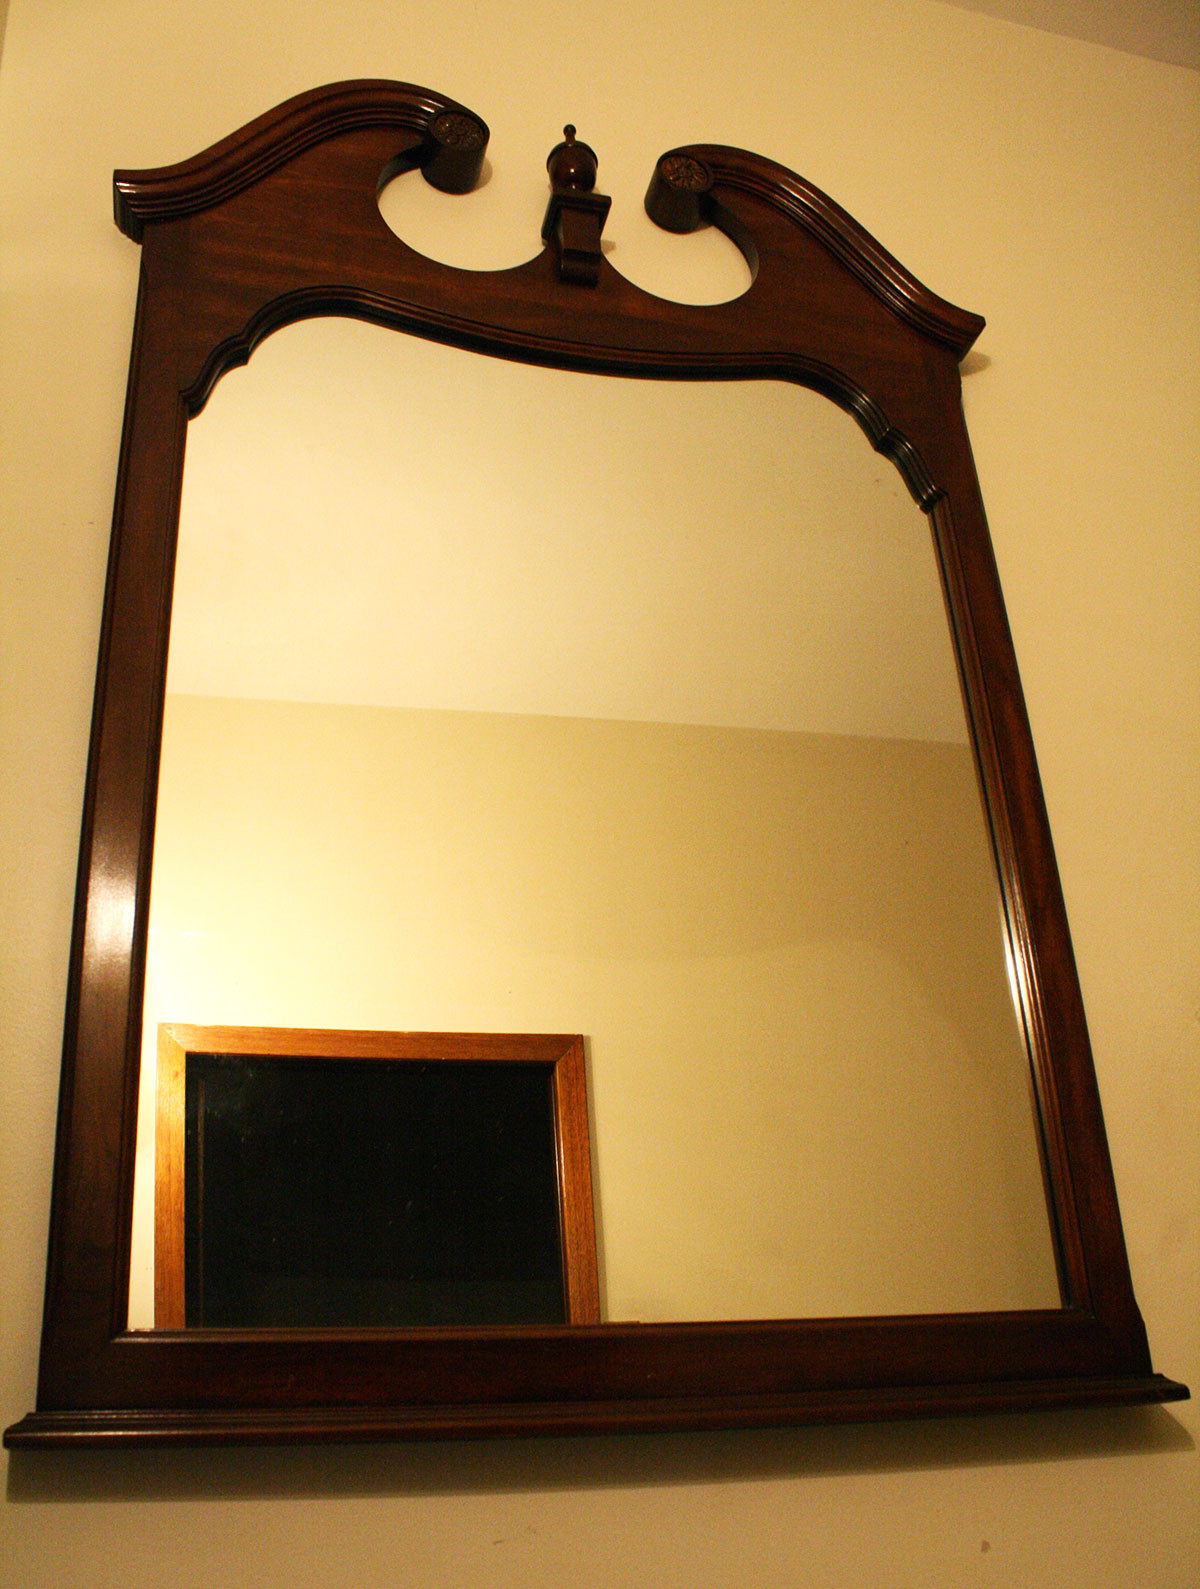 Mirror hanging on the wall